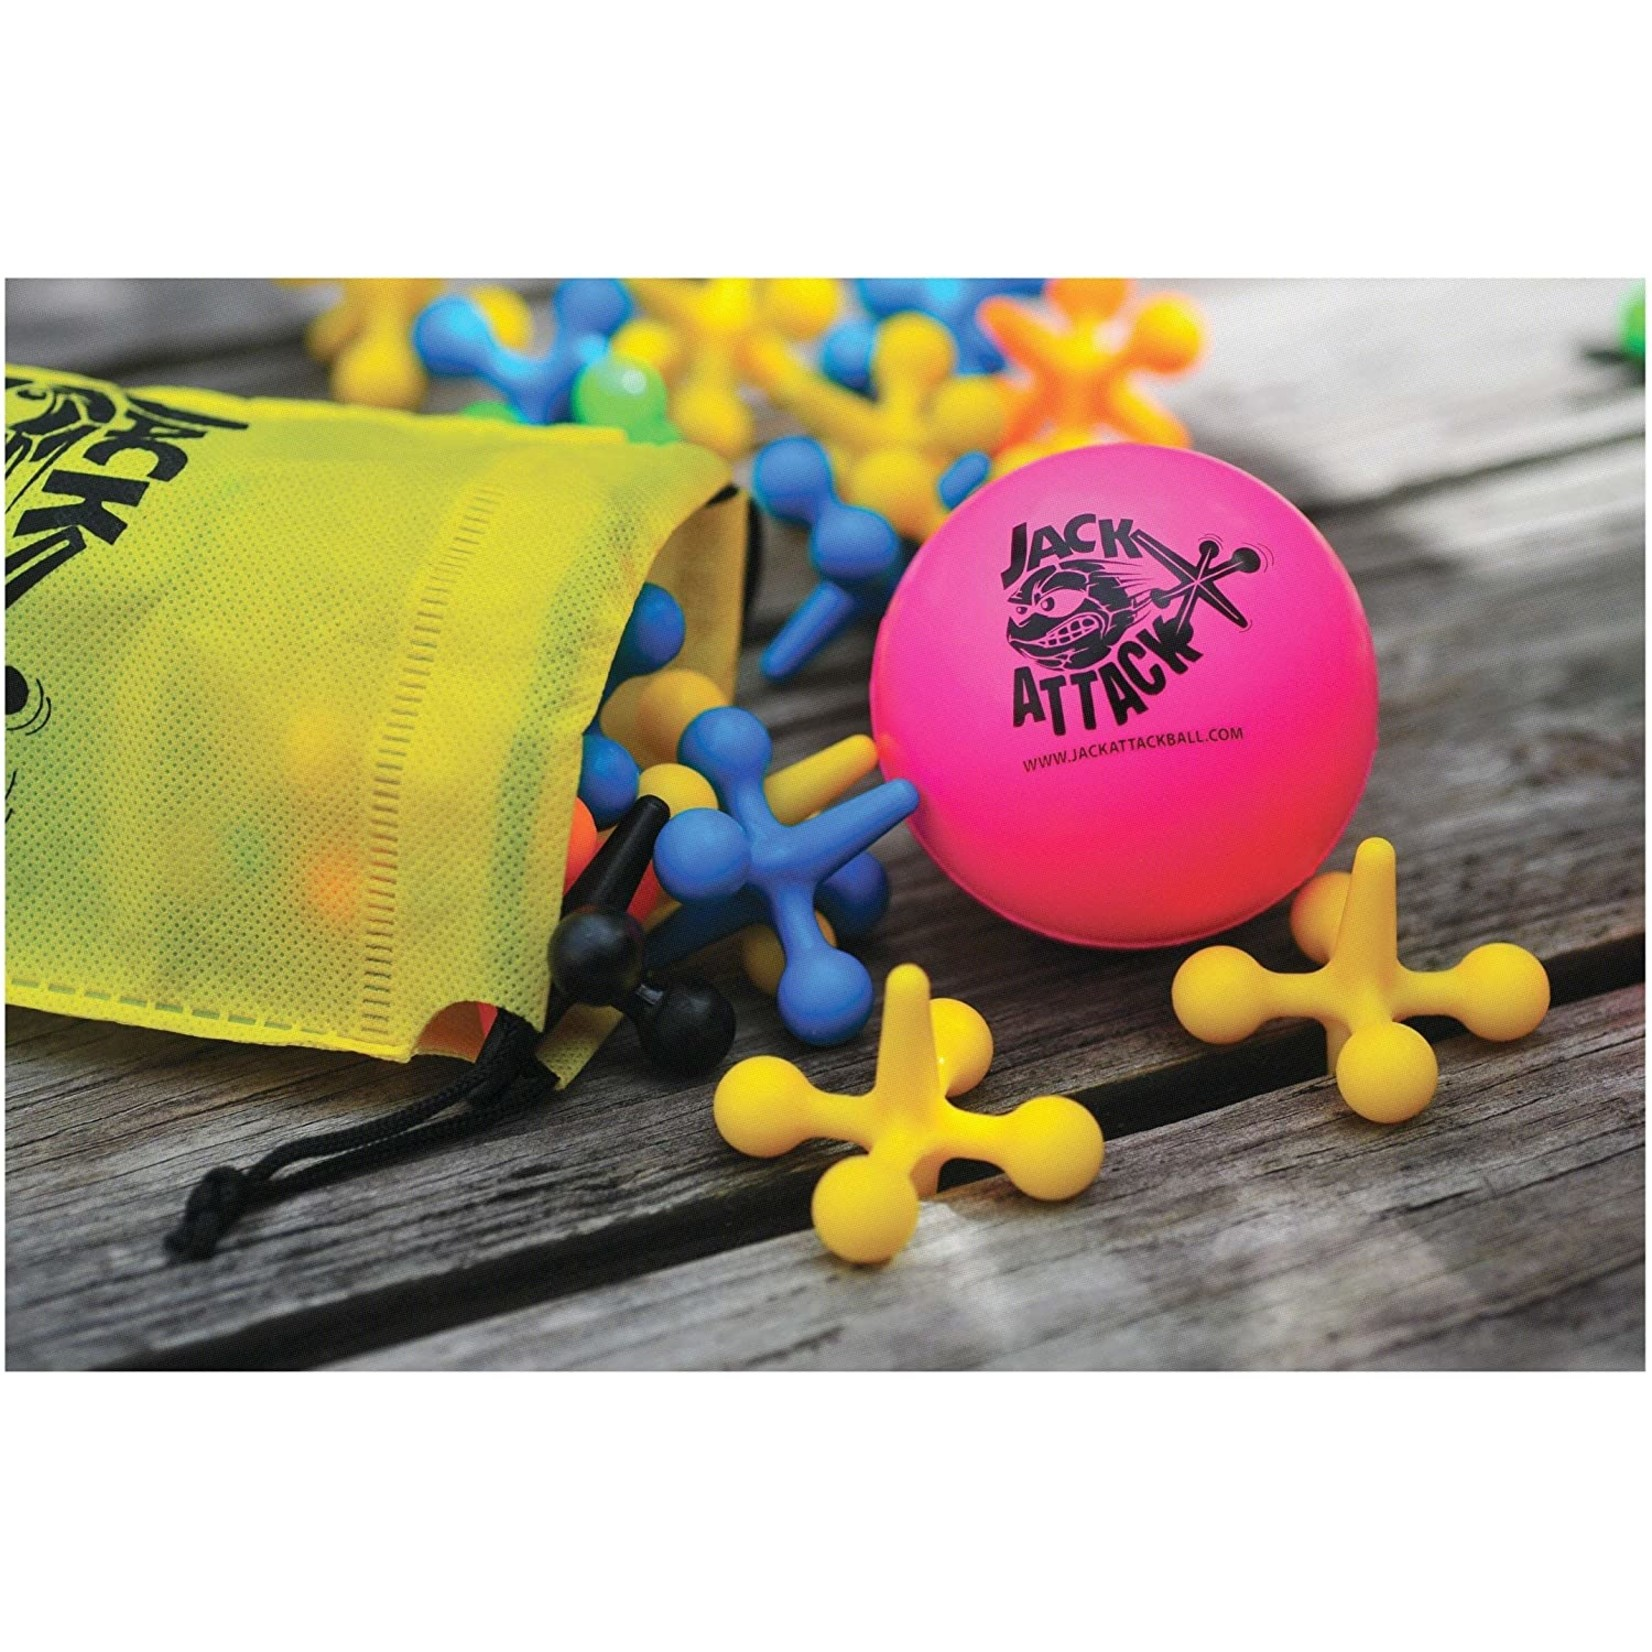 Jack Attack Street Ball Game